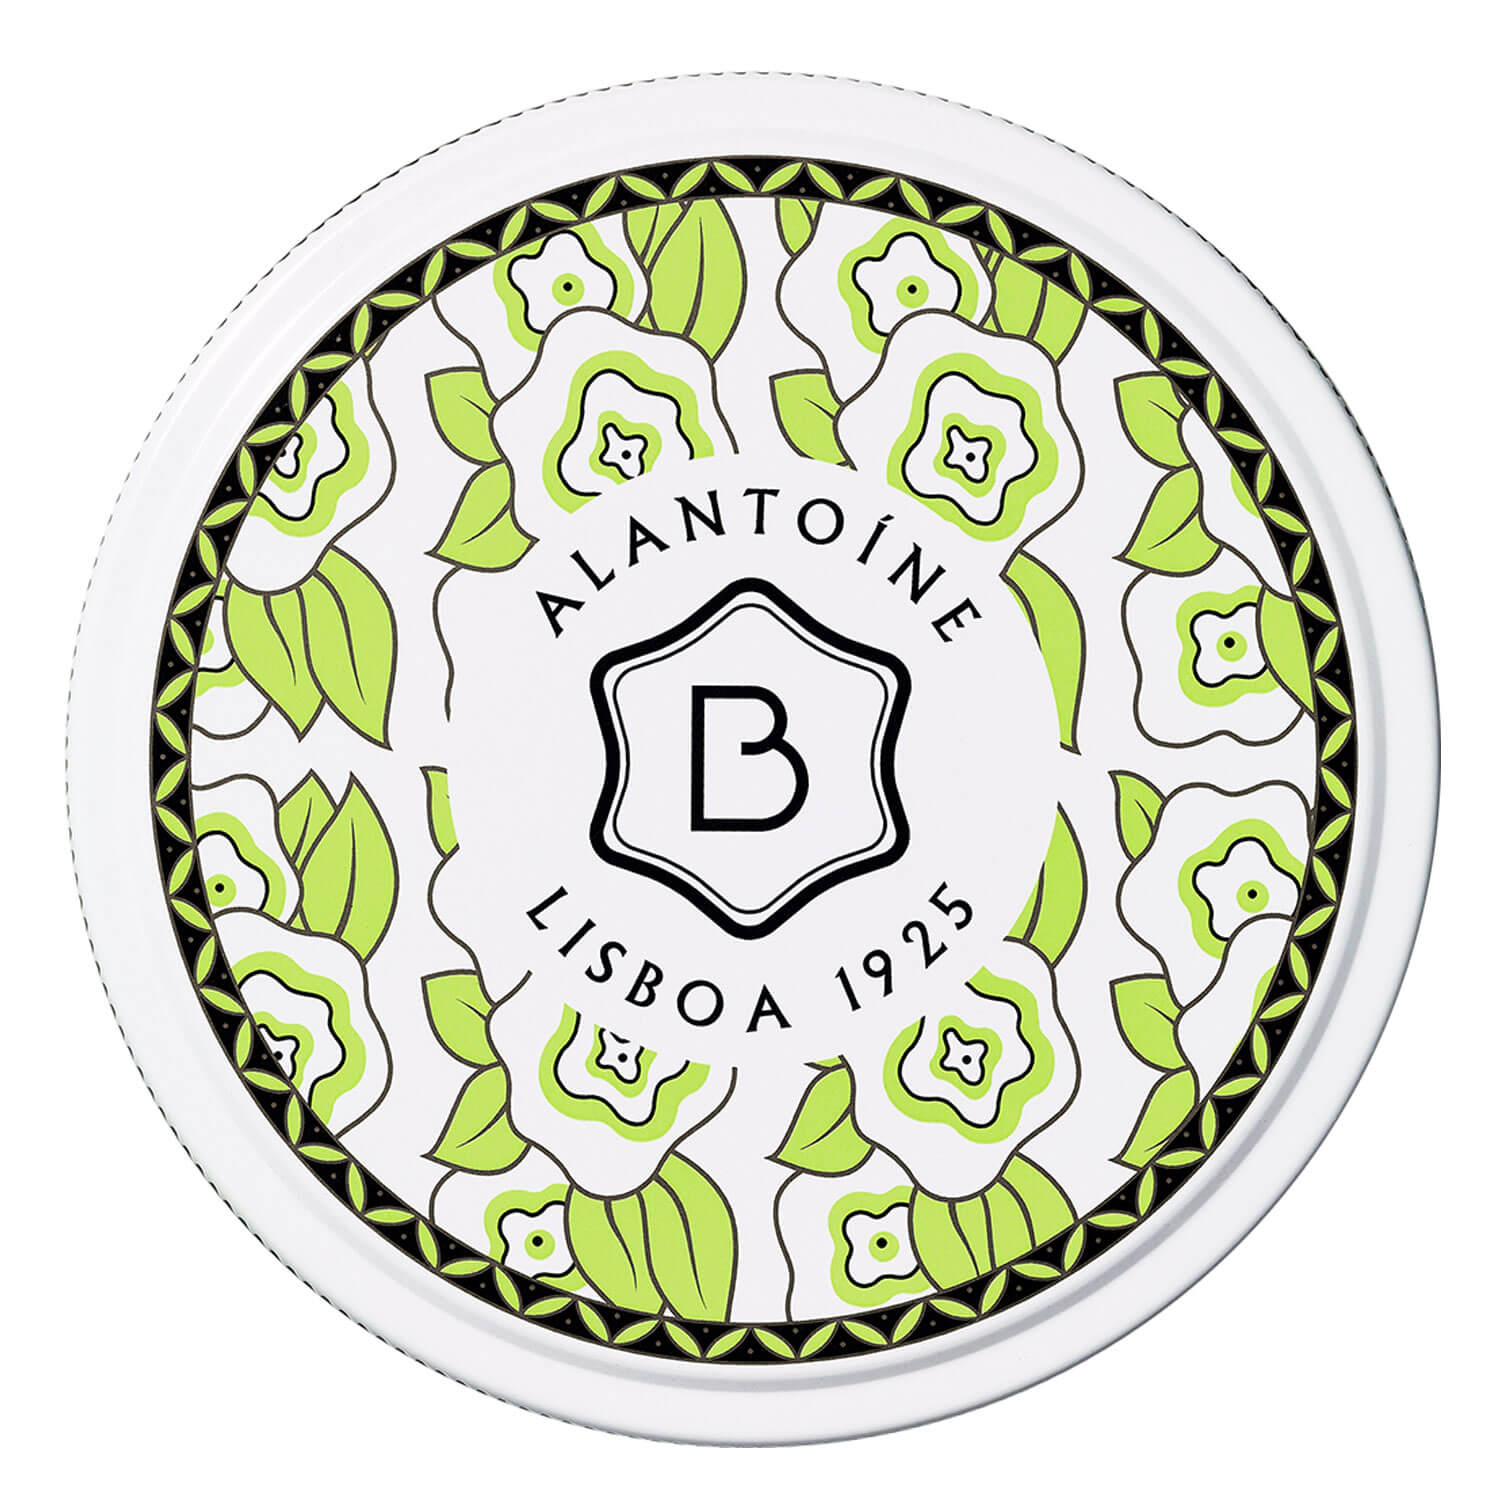 Alantoíne - Supreme Body Butter